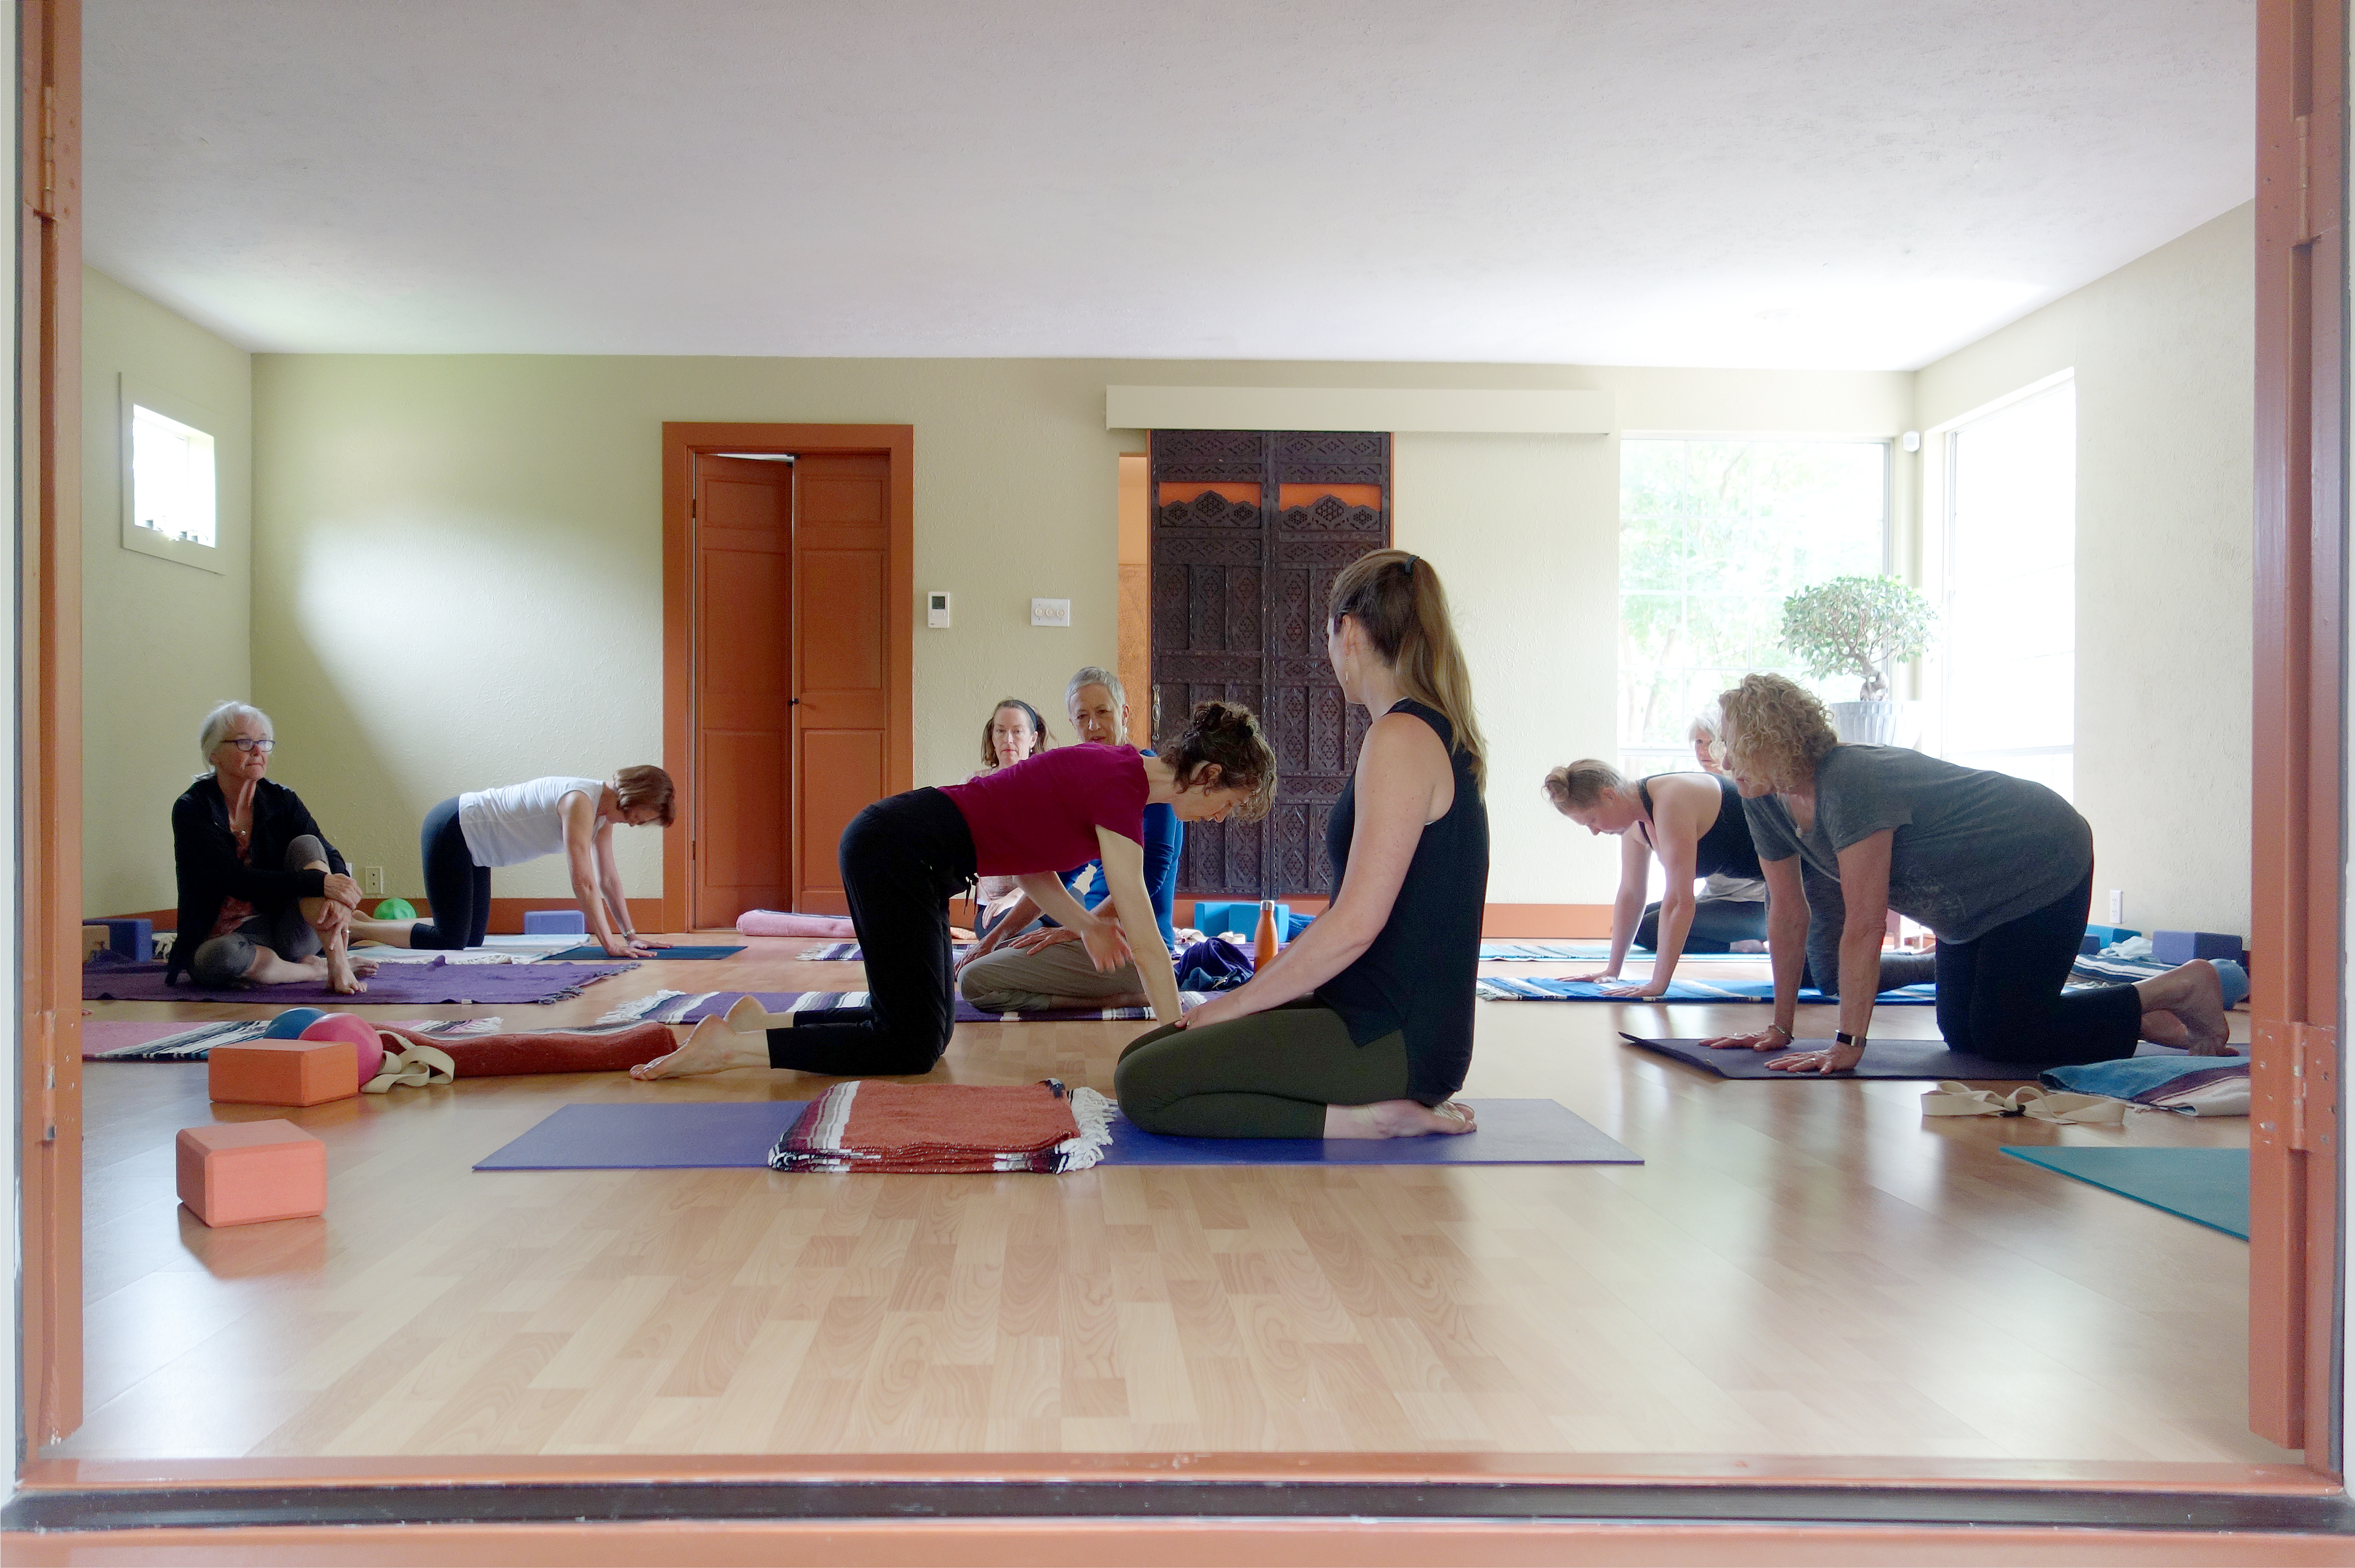 somatic yoga class dallas Jessica O'Keefe demonstrating